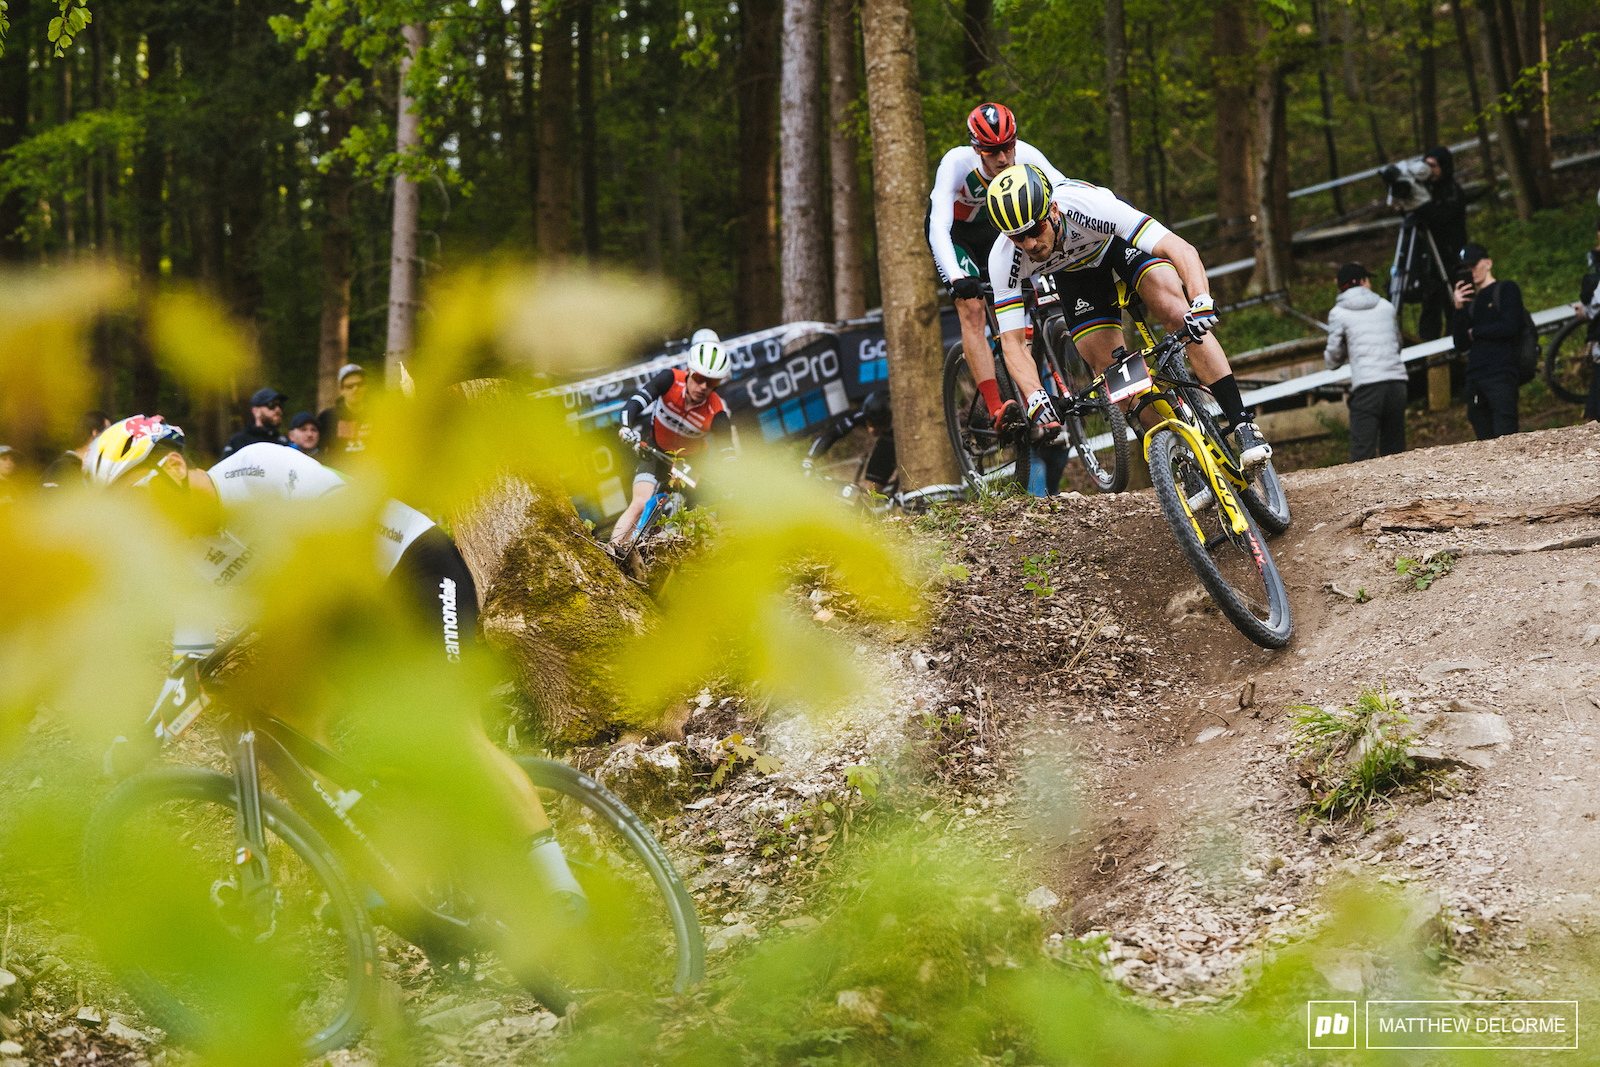 Nino Schurter took a turn at the front and ended his twenty minutes in third.